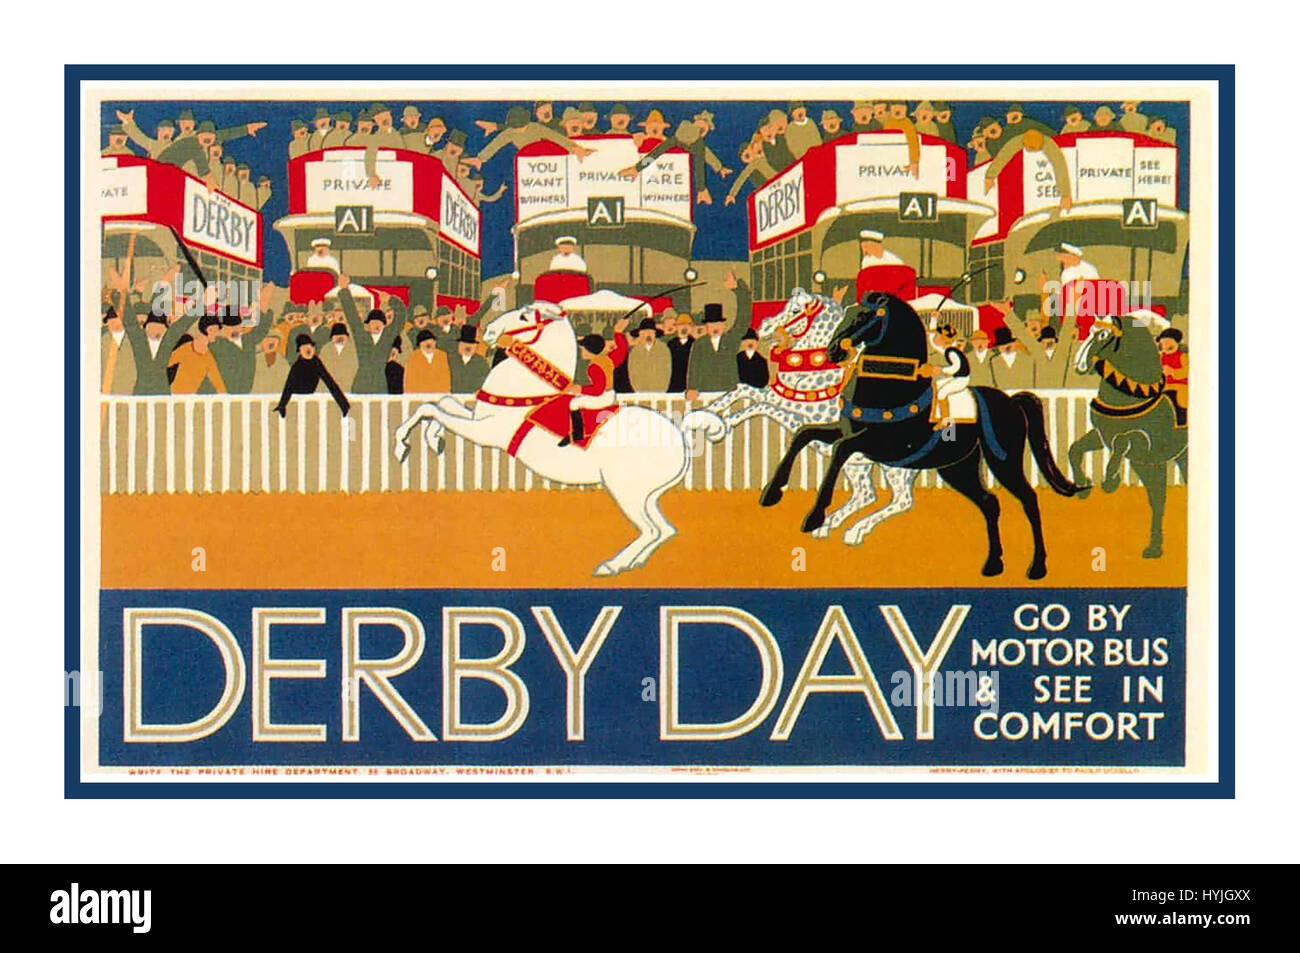 Vintage 1920's London underground poster designed by Herry Perry - Stock Image